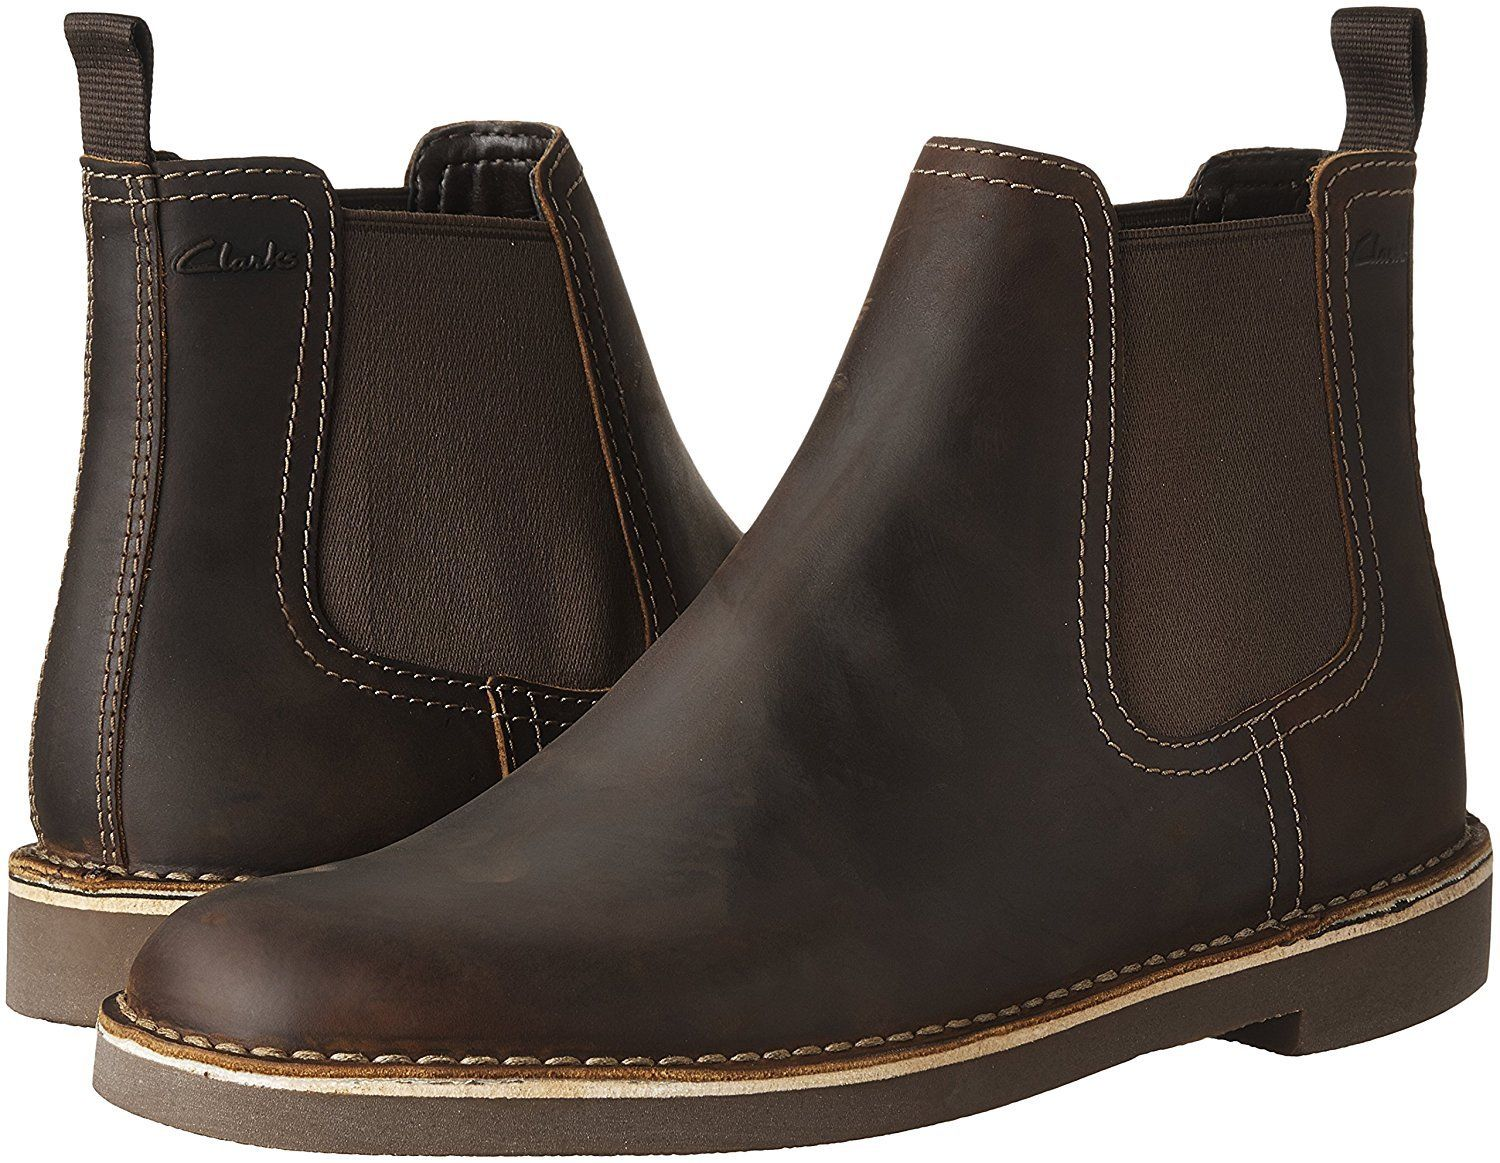 Clarks Bushacre Hill Beeswax